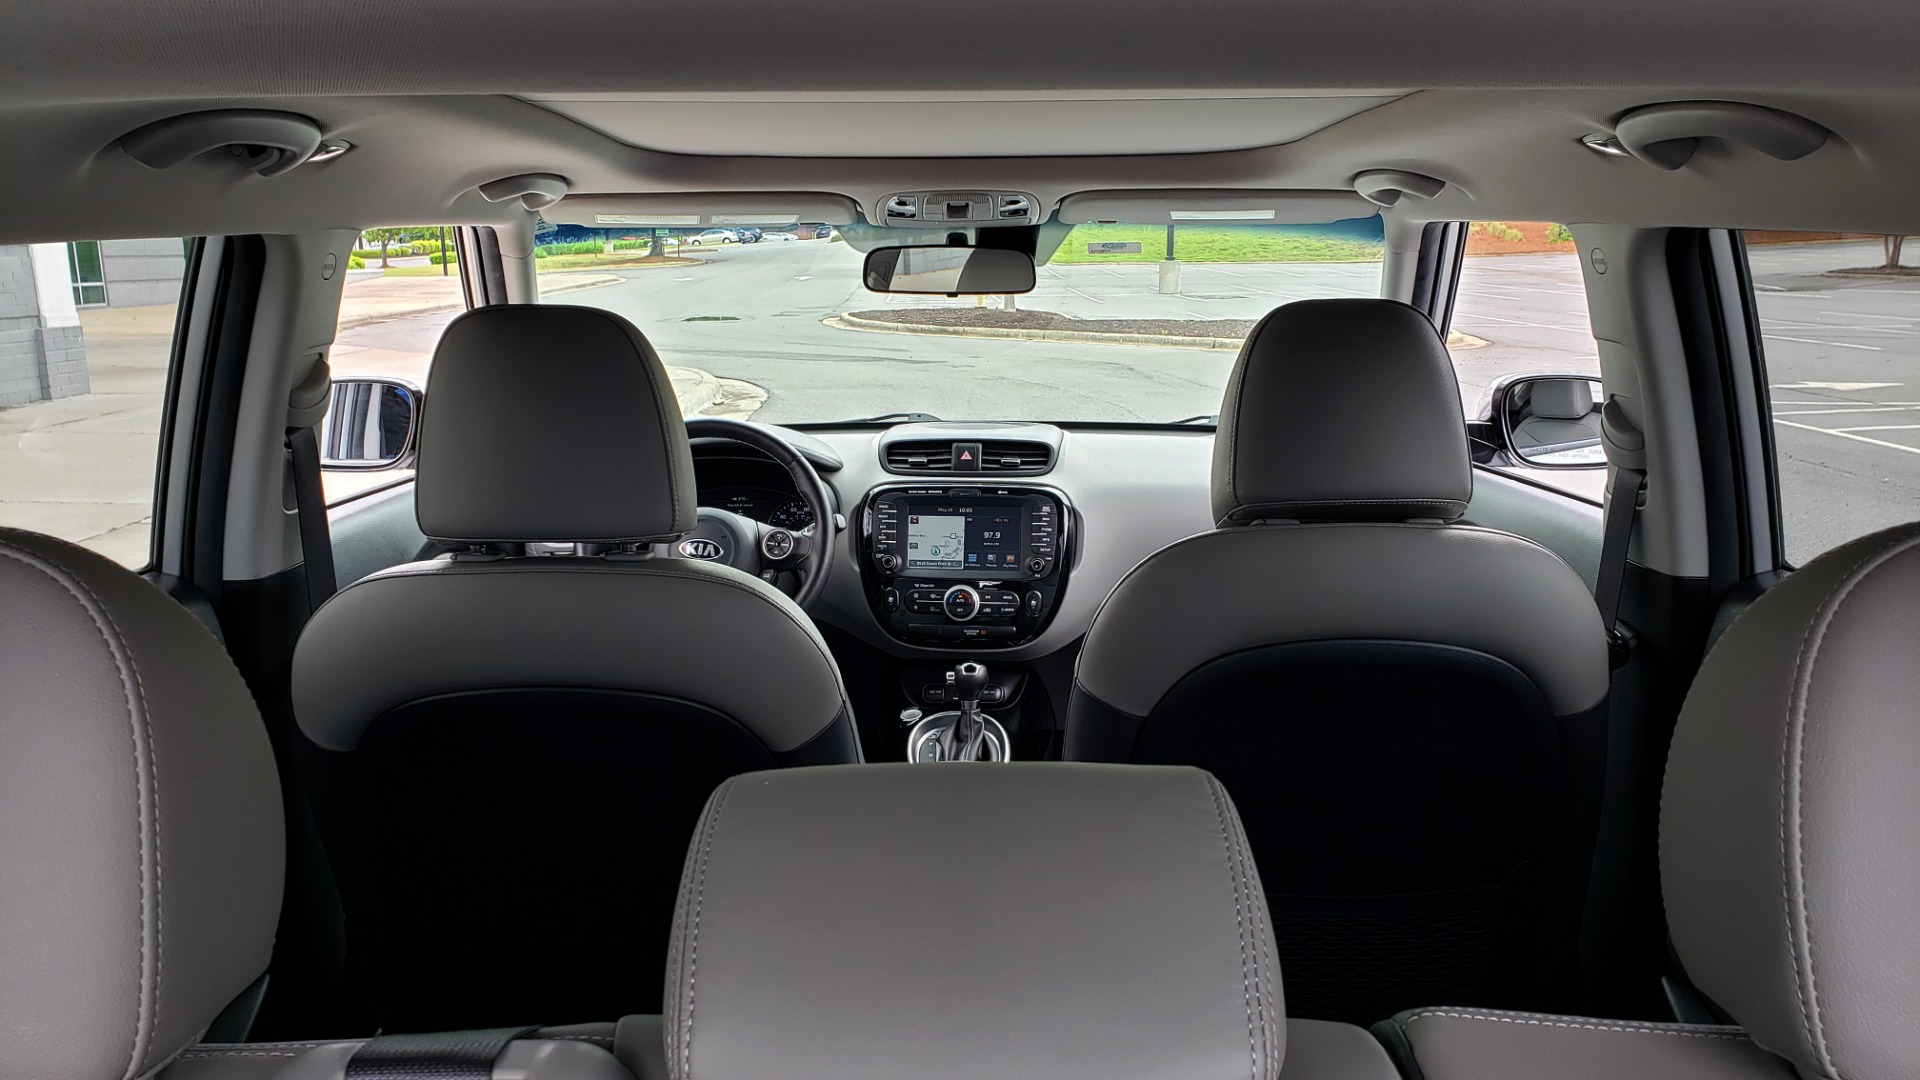 Used 2017 Kia SOUL PLUS / NAV / SUNROOF / LEATHER / HTD STS / REARVIEW for sale $16,995 at Formula Imports in Charlotte NC 28227 14